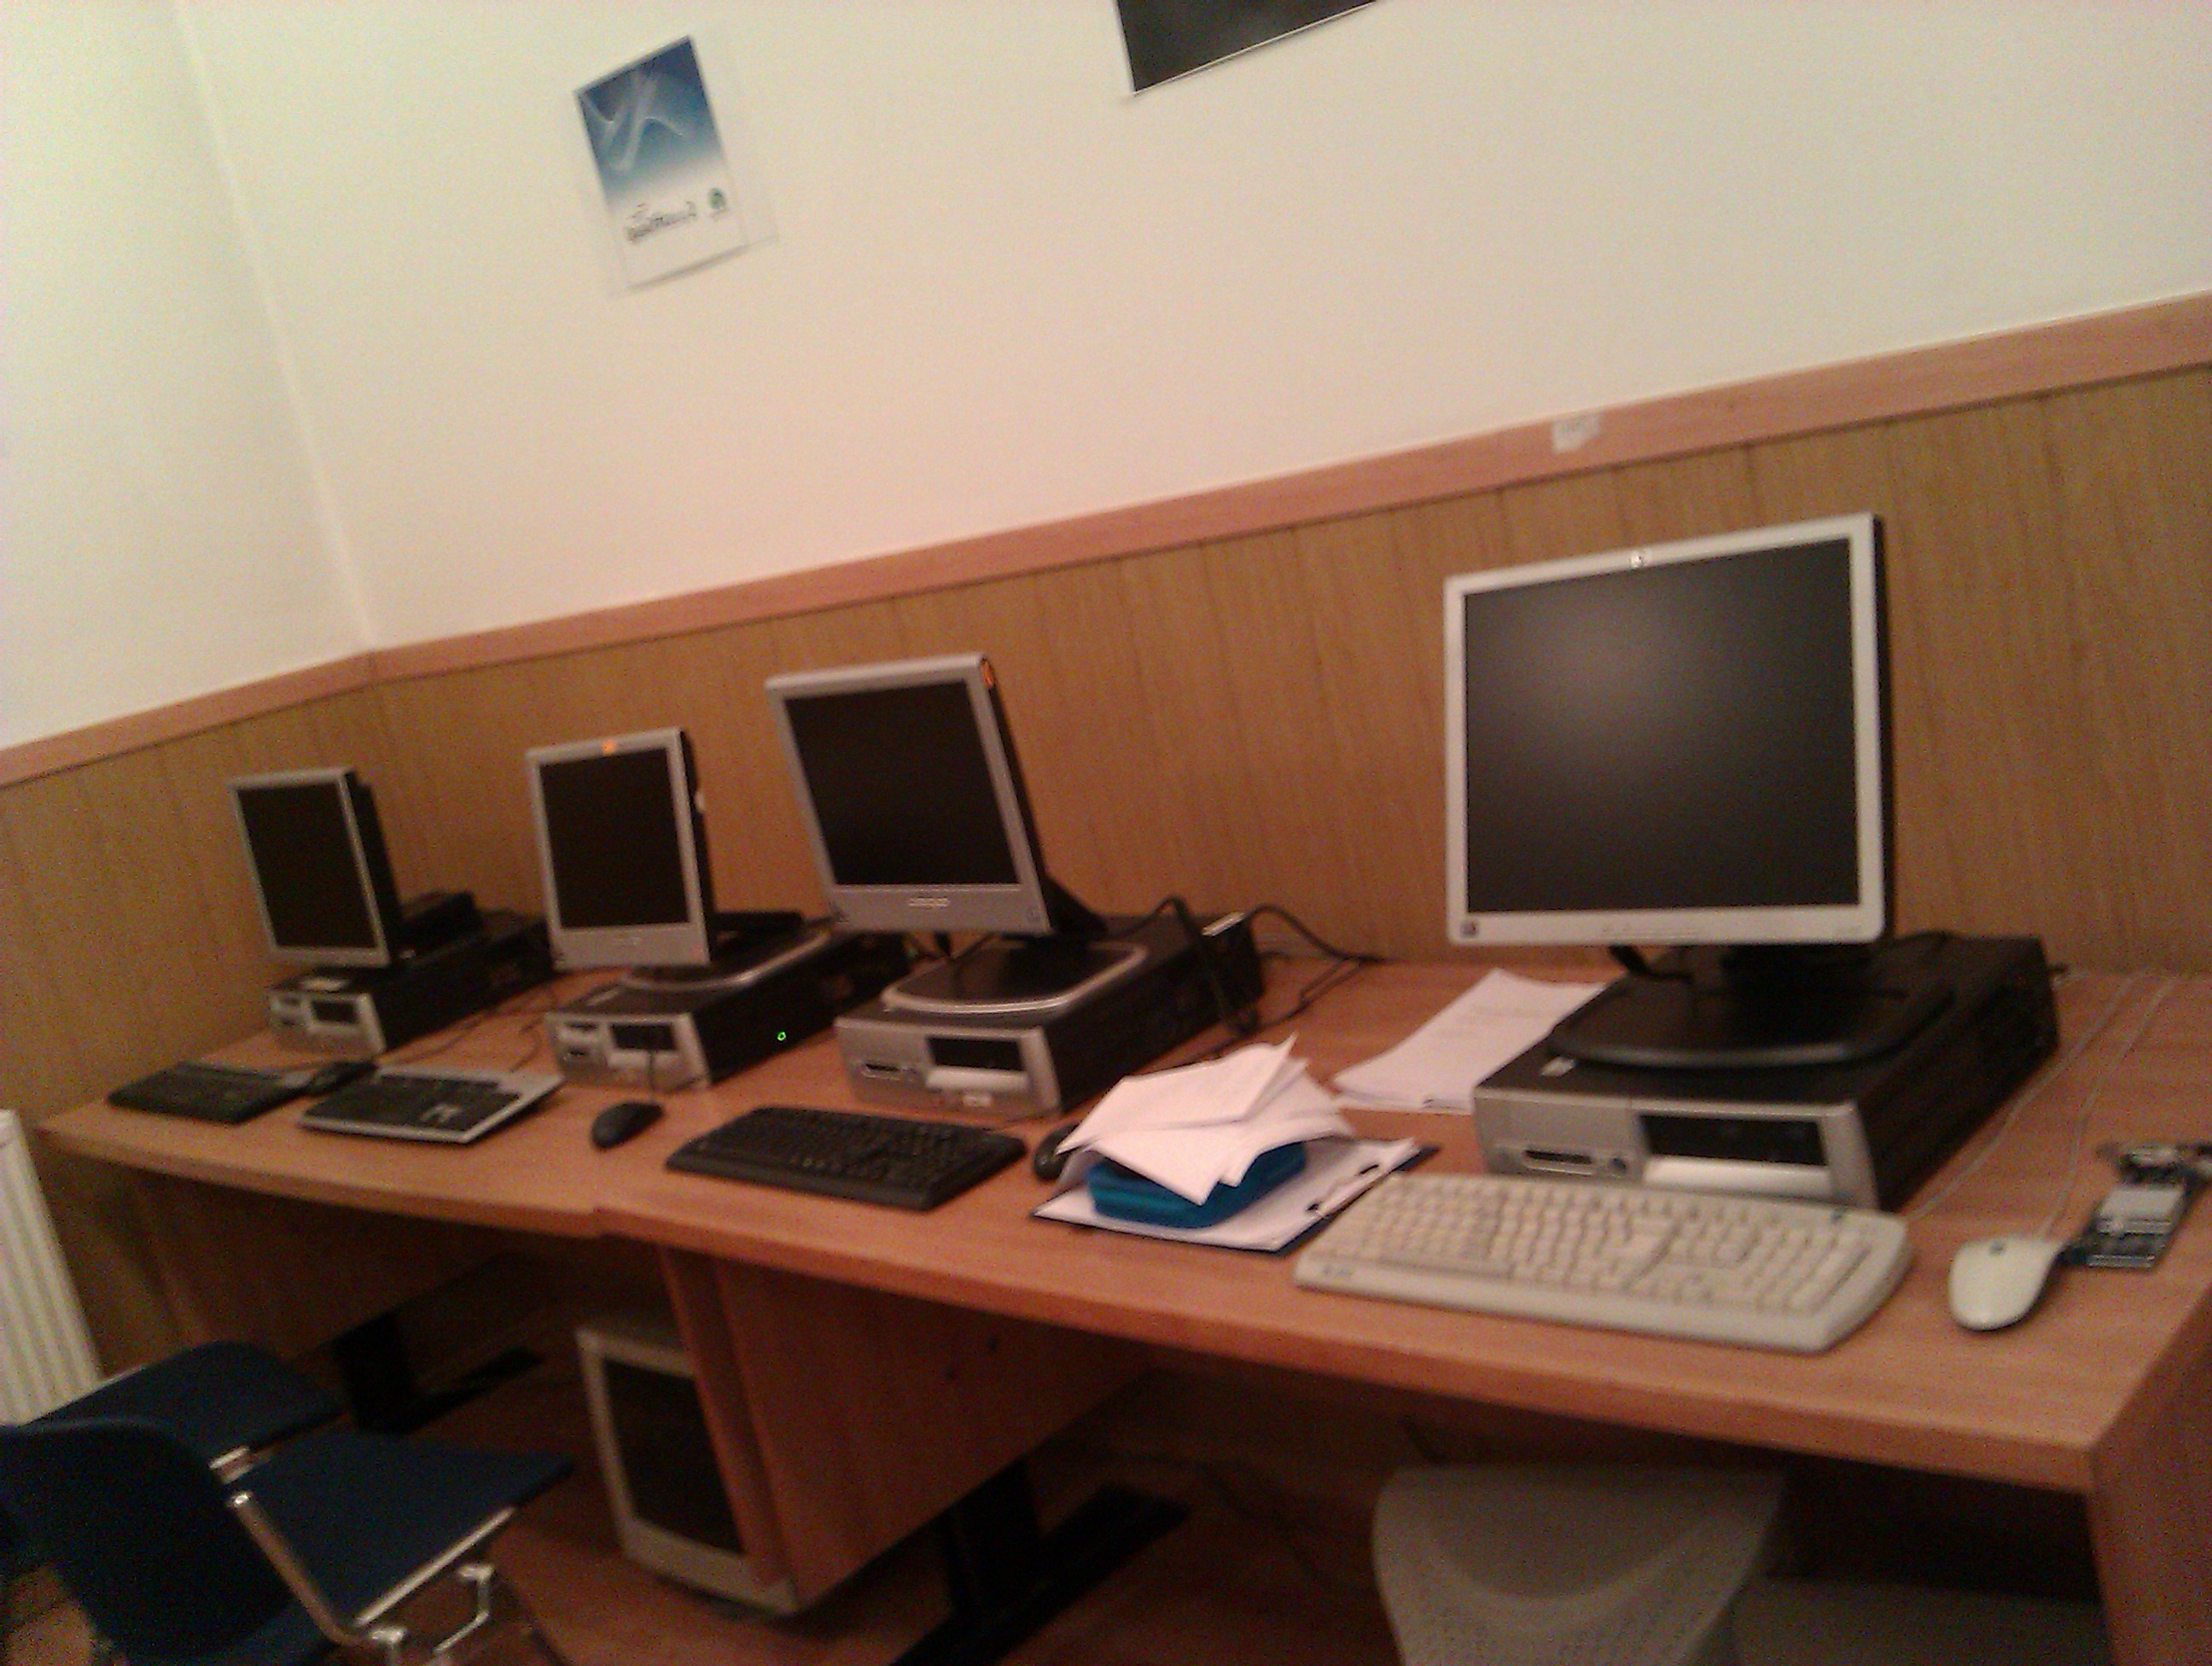 The computer lab with the old computers